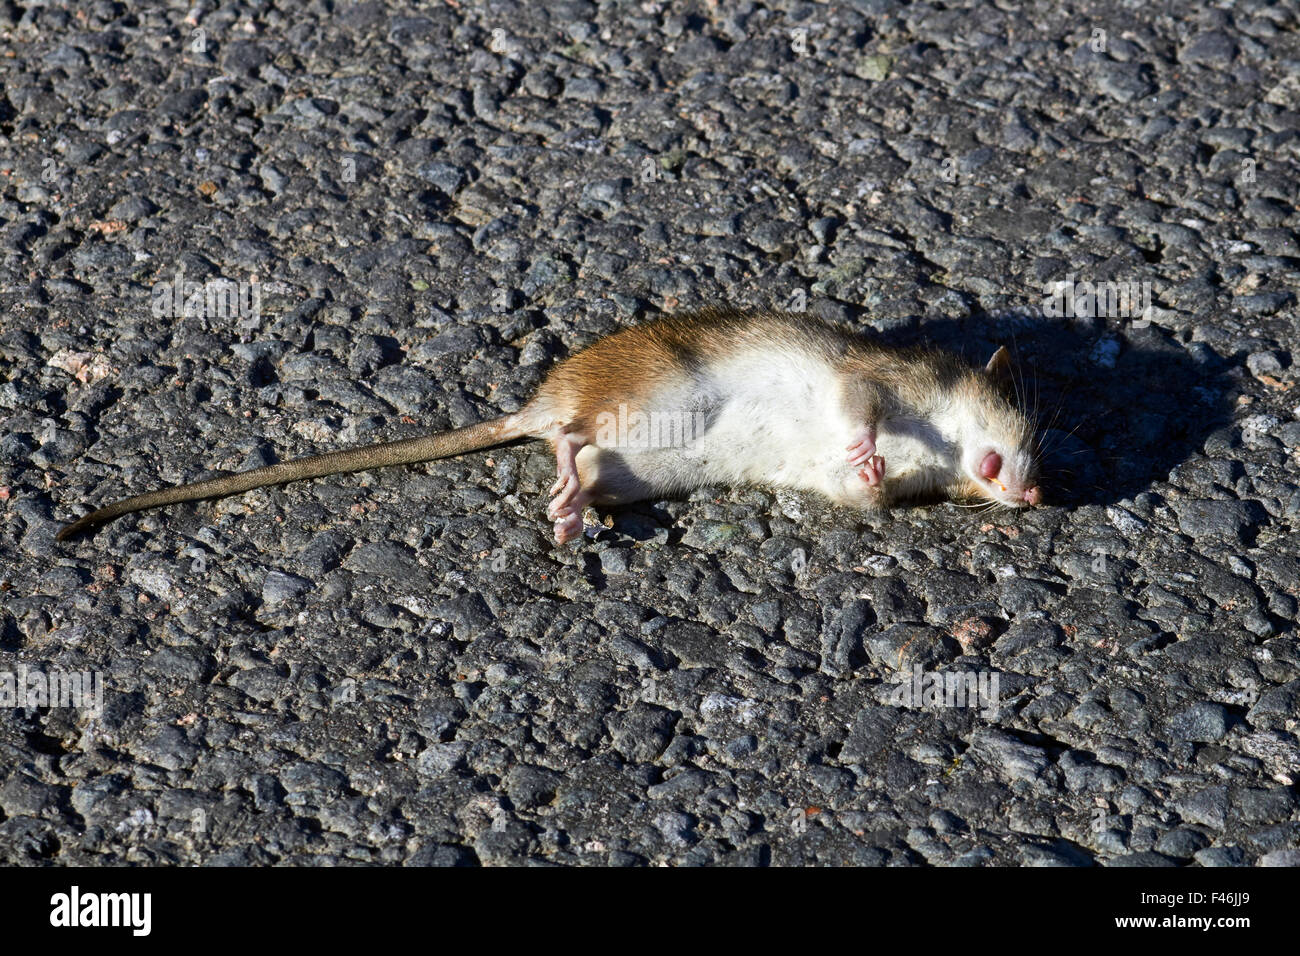 dead brown rat on road, Finland - Stock Image